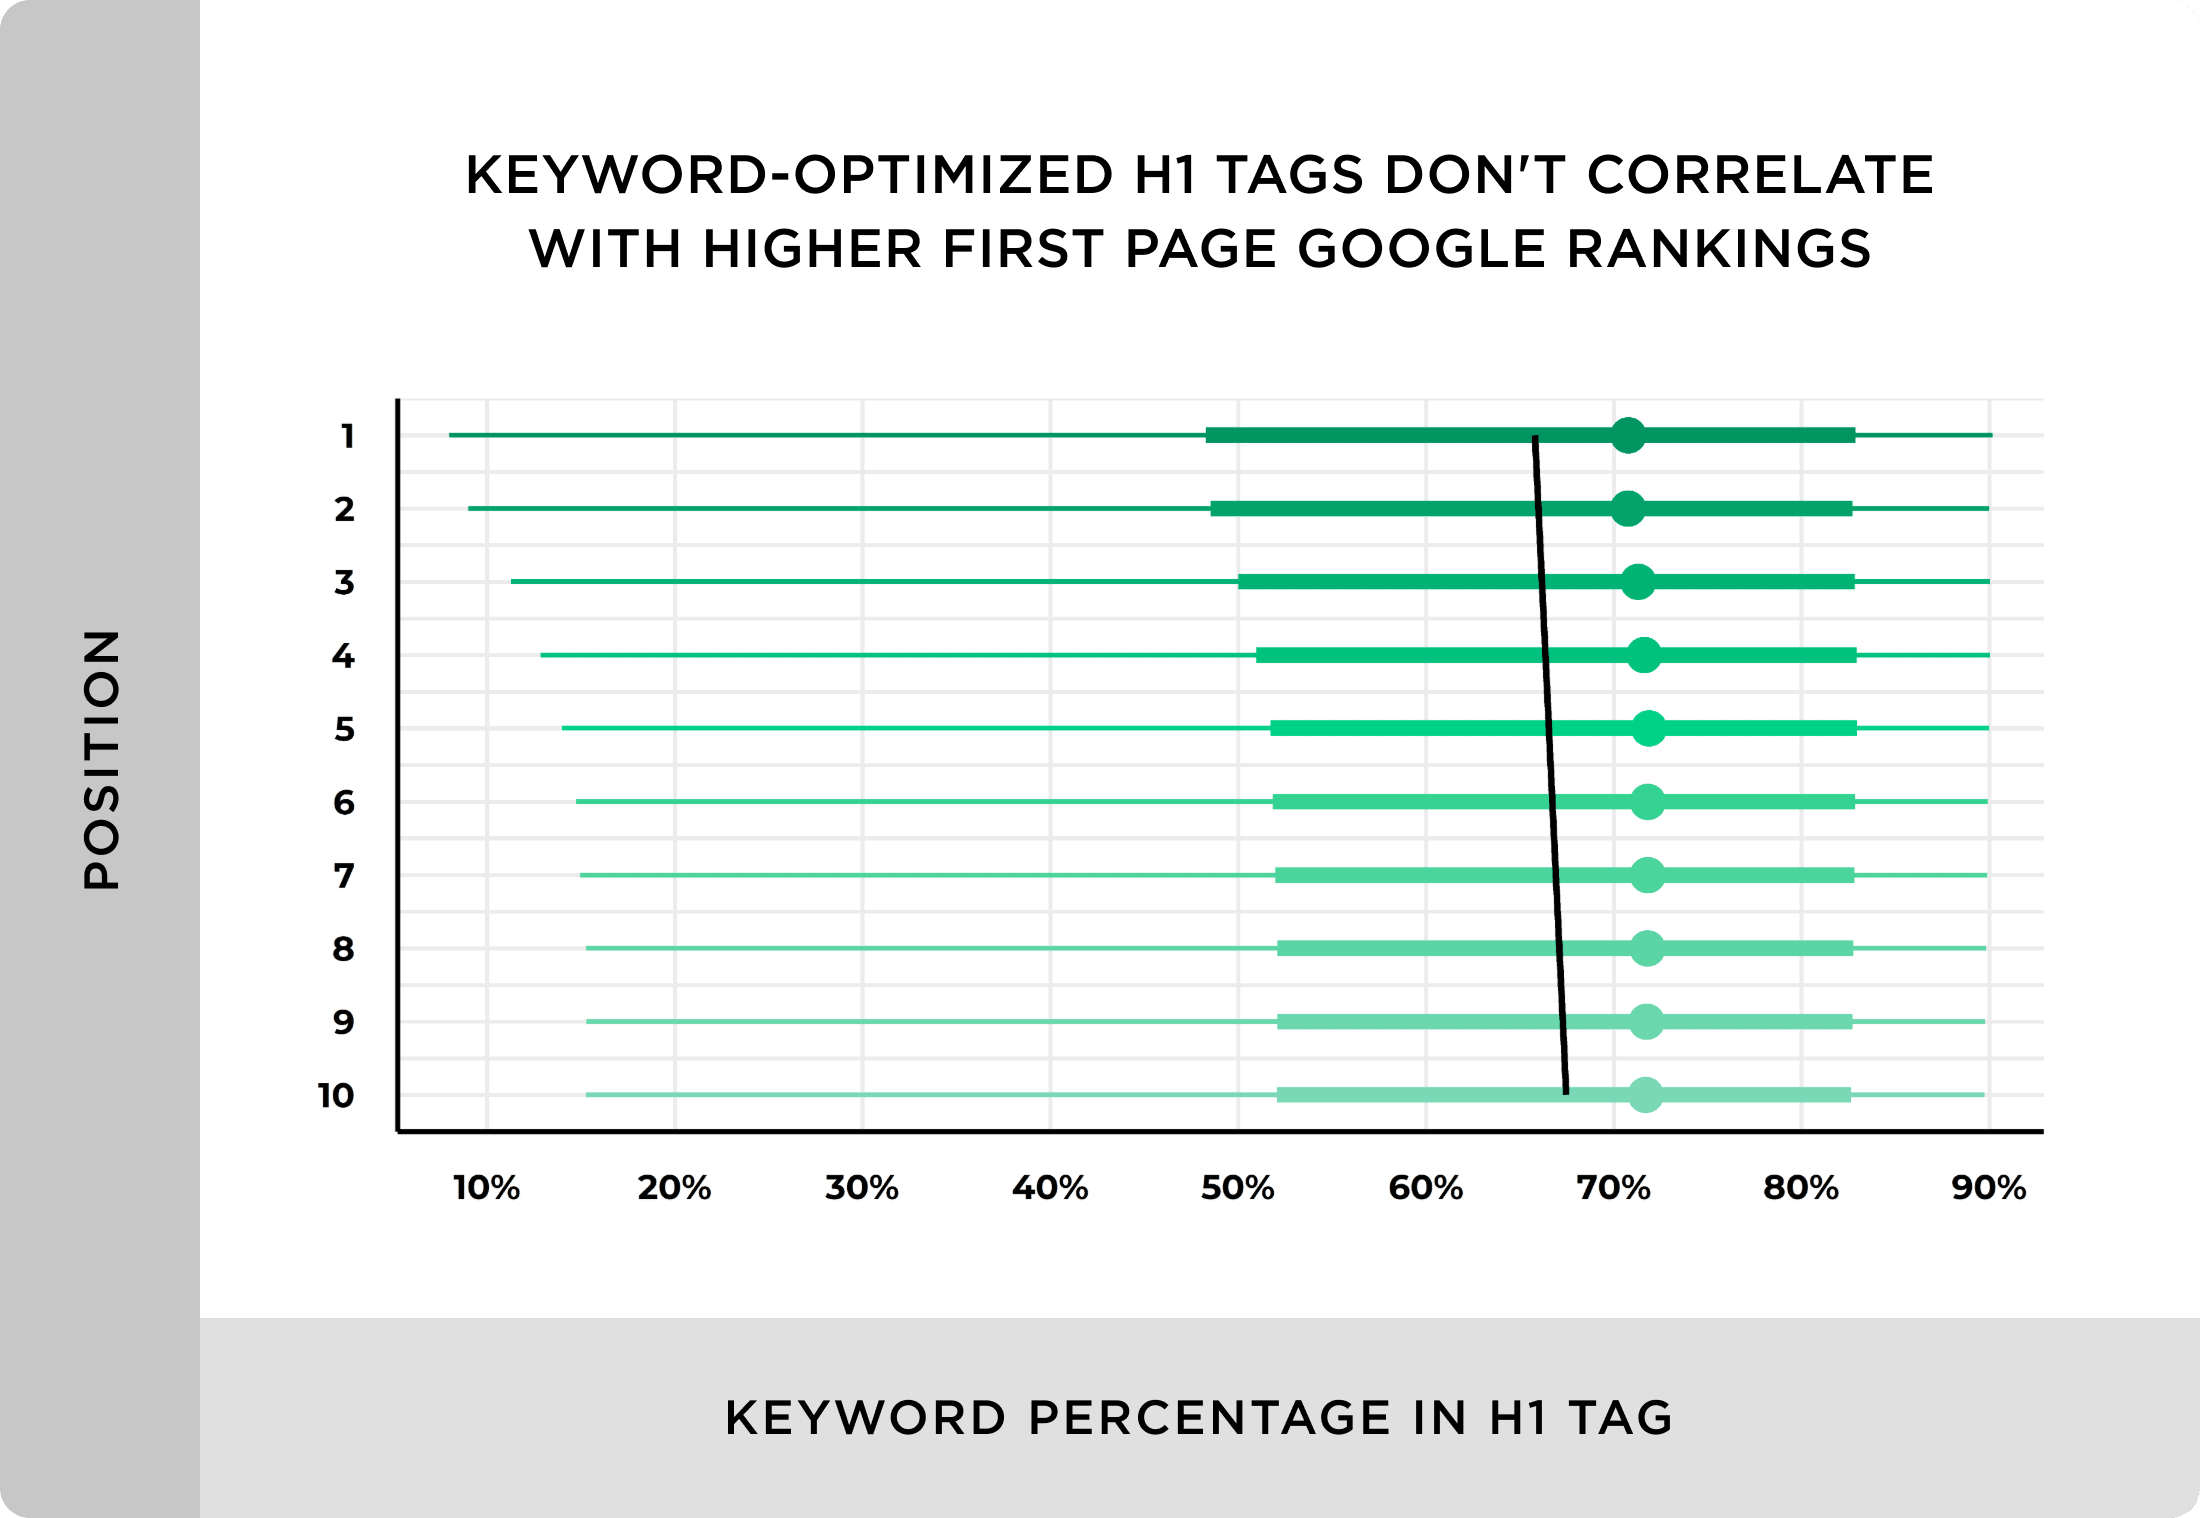 Keyword optimized H1 tags don't correlate with higher first page Google rankings